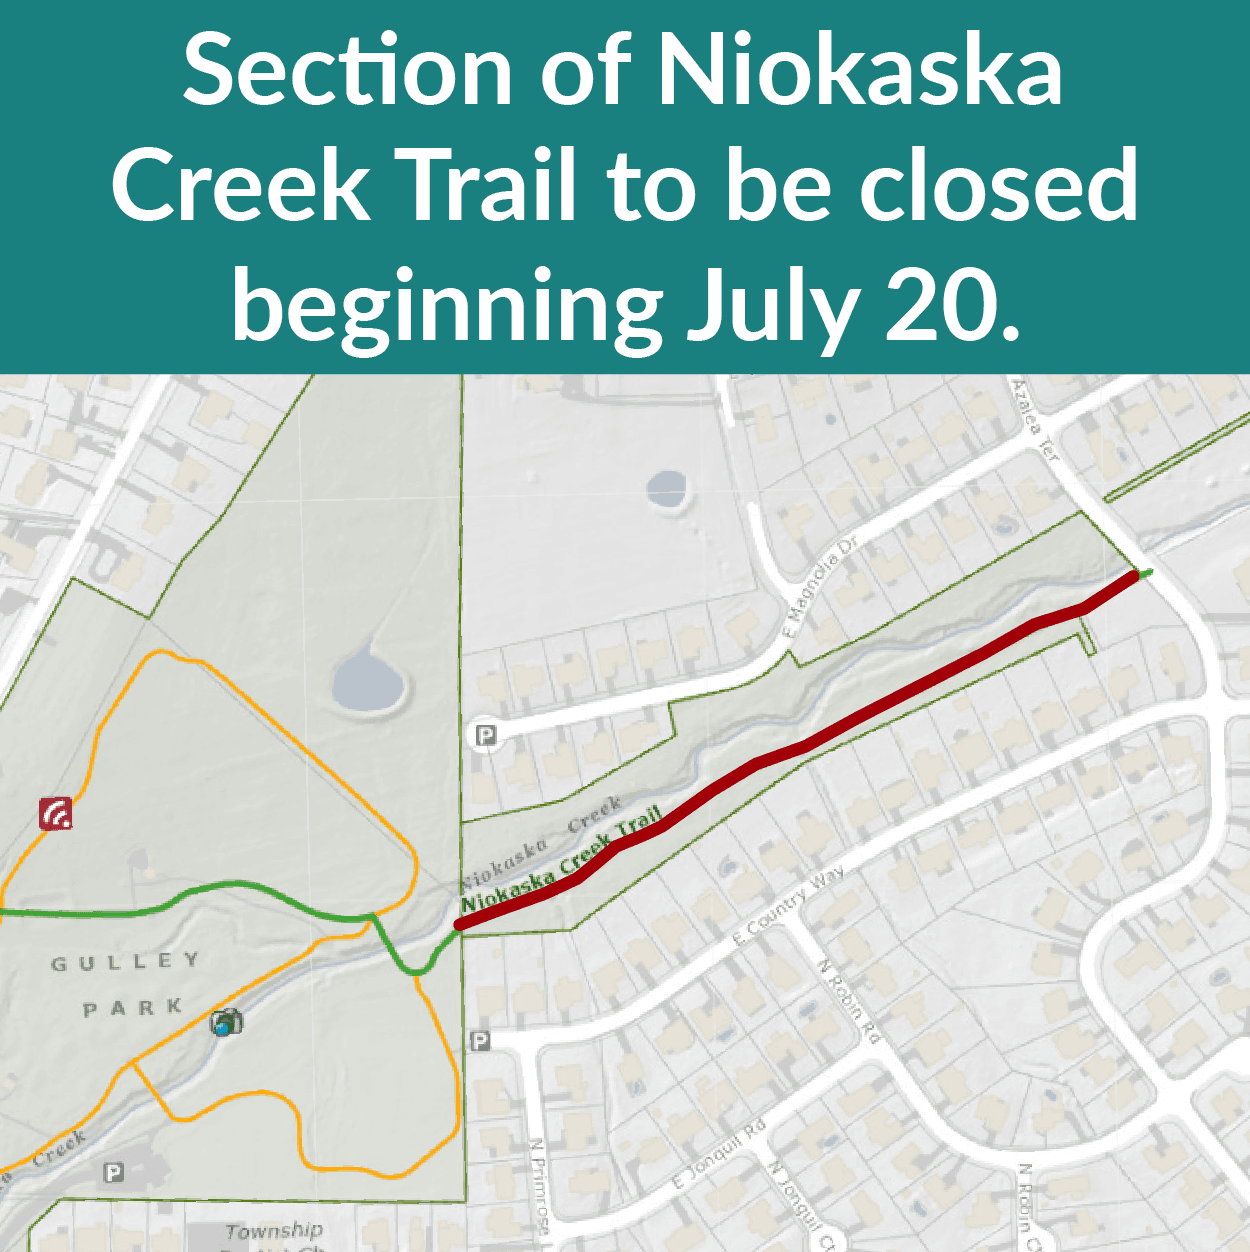 Section of Niokaska Creek Trail closing beginning July 20